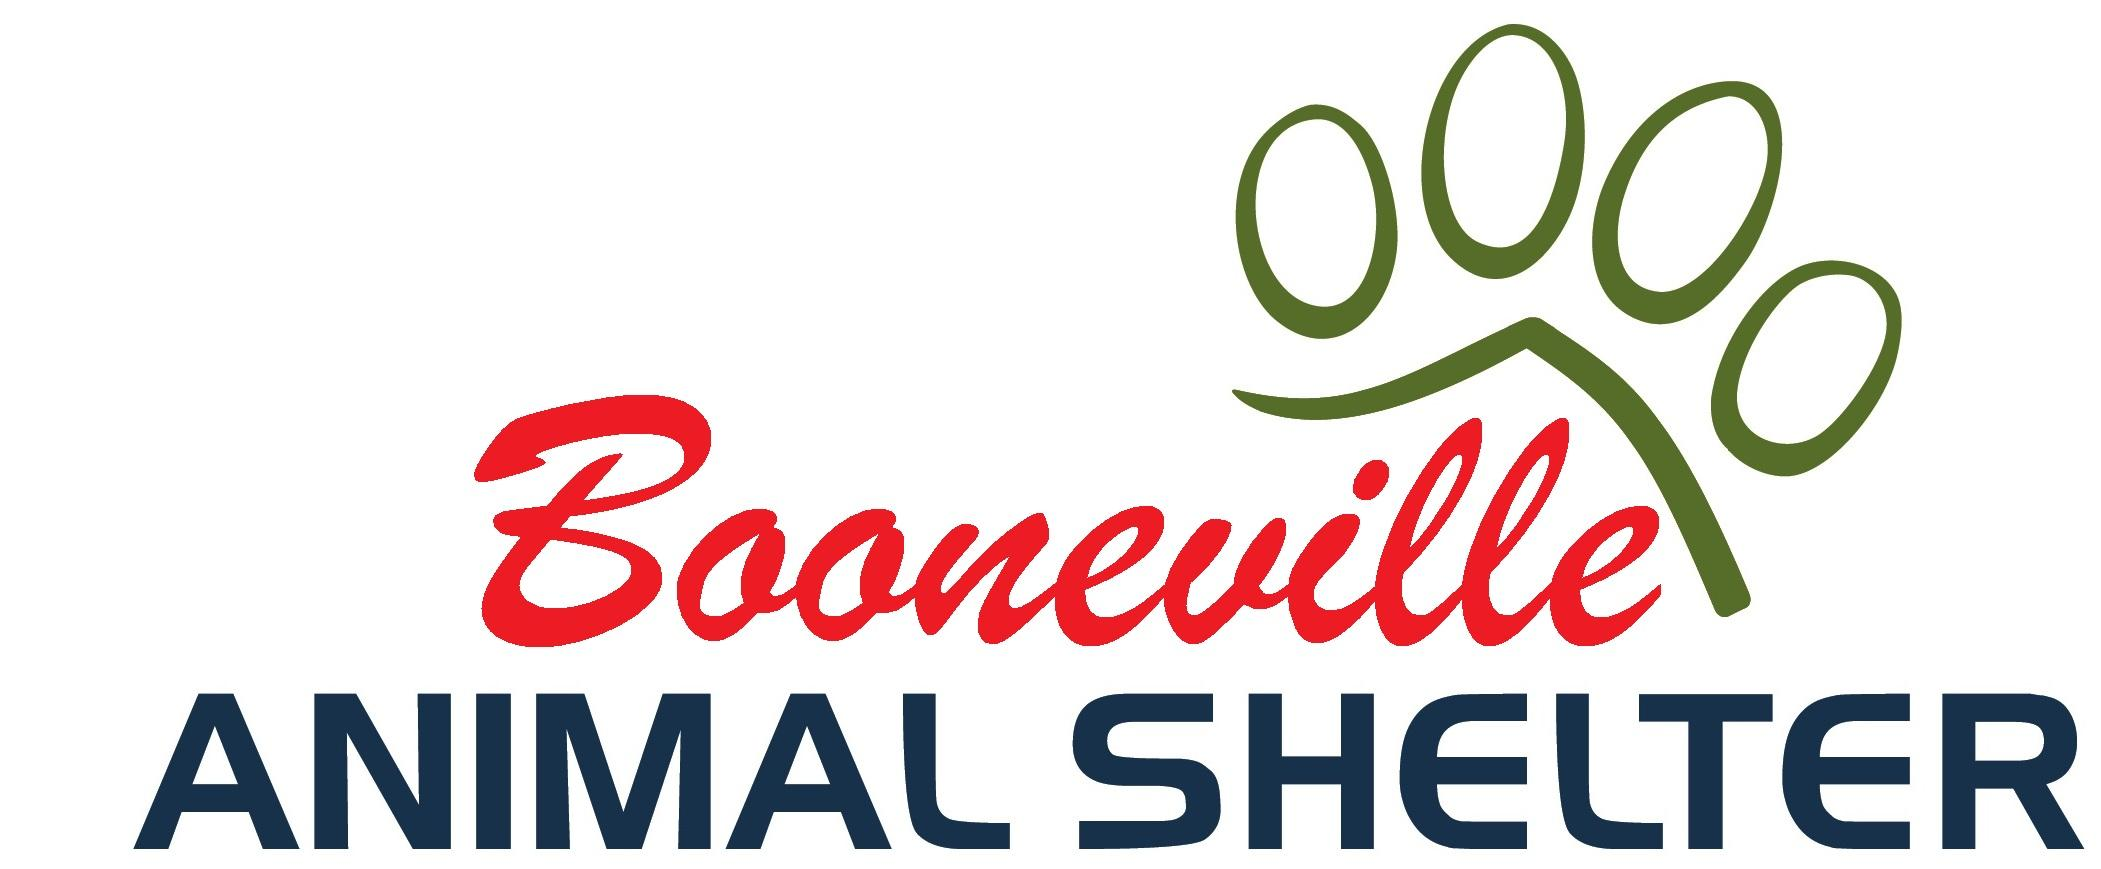 Booneville Animal Shelter